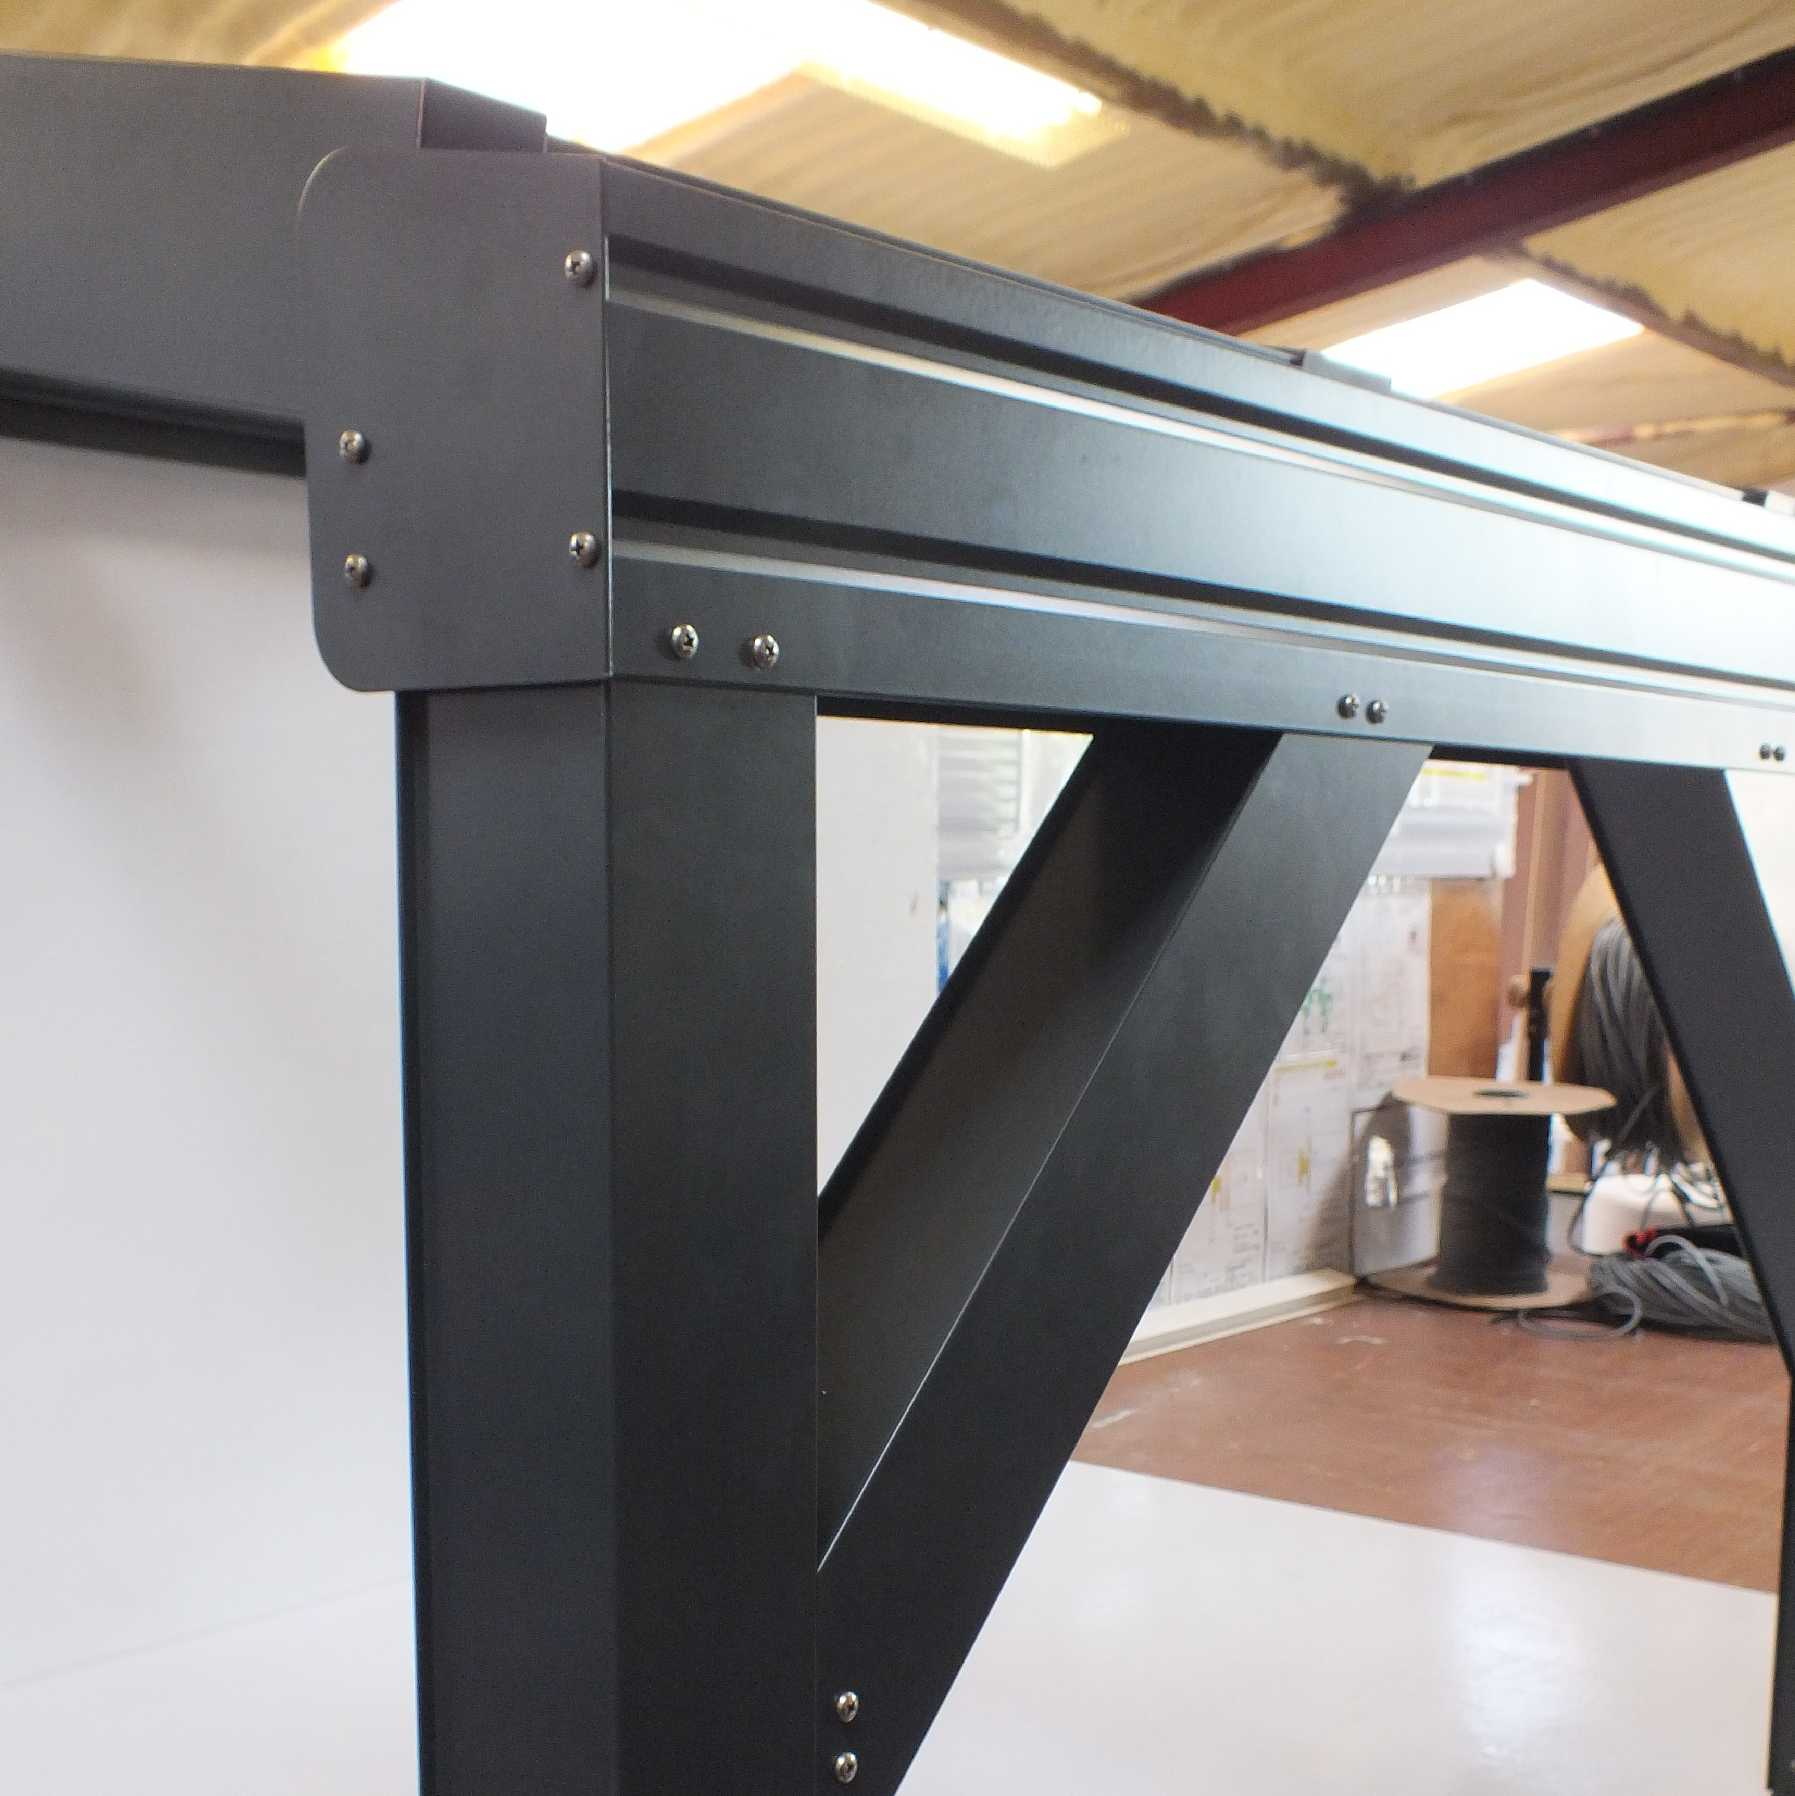 Omega Smart Lean-To Canopy, Anthracite Grey, UNGLAZED for 6mm Glazing - 4.2m (W) x 4.0m (P), (3) Supporting Posts from Omega Build